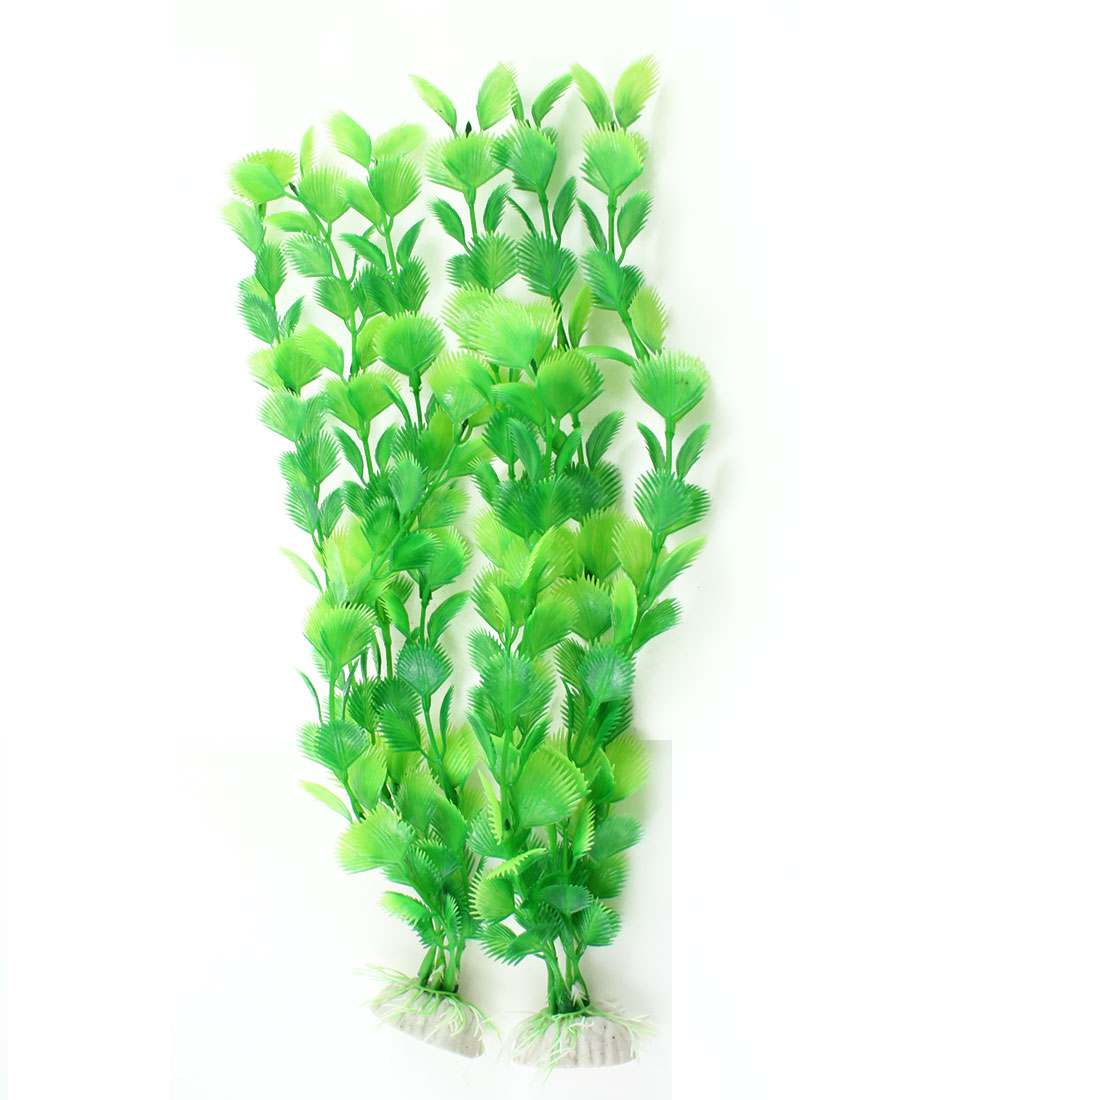 "Aquarium Artificial Aquatic Plant Grass Ornament Green 12.6"" Long 2 Pcs"